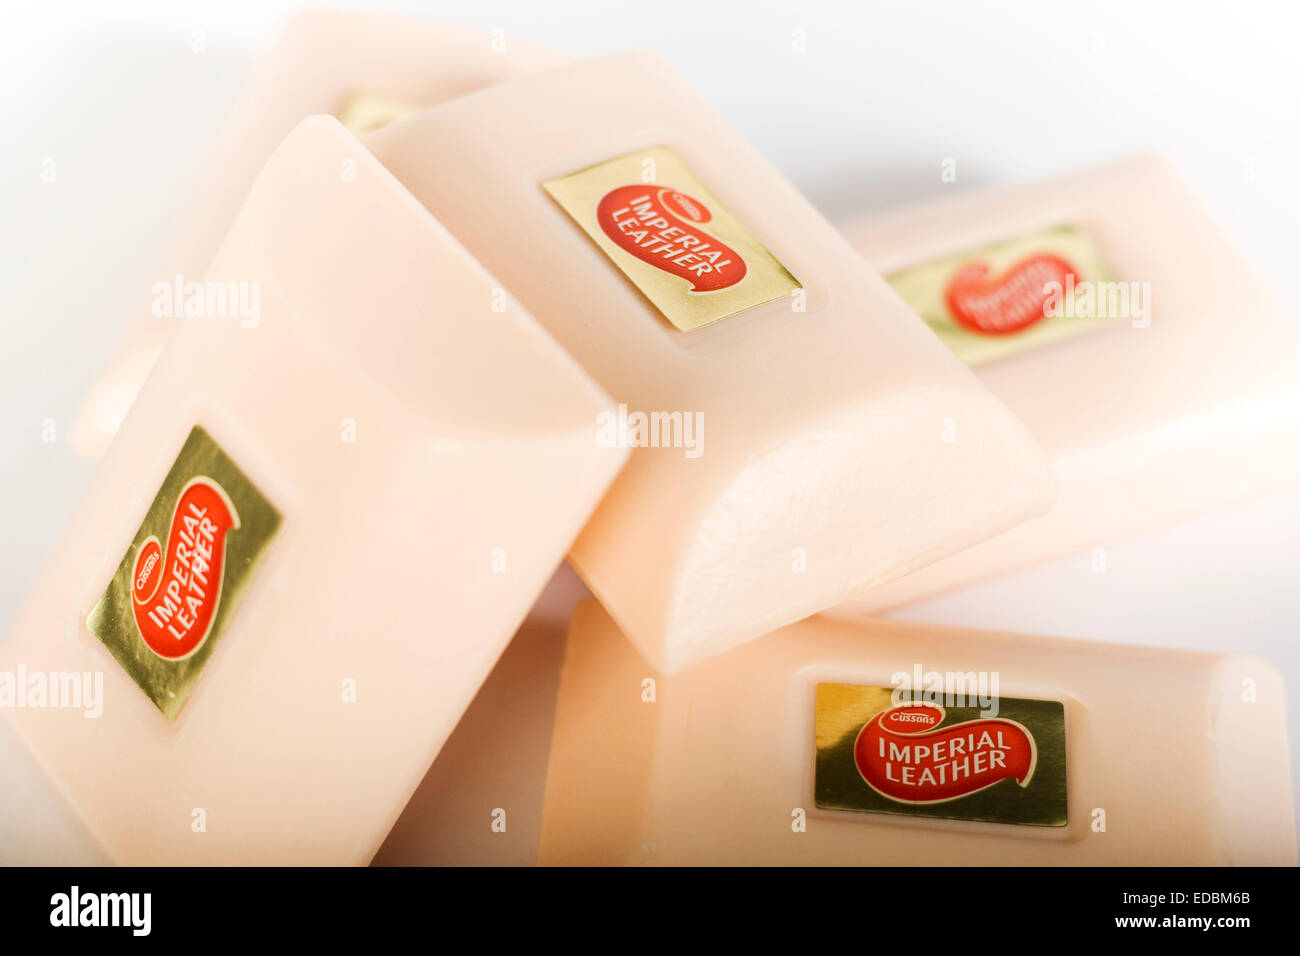 Illustrative image of PZ Cussons Imperial Leather soap.Stock Photo